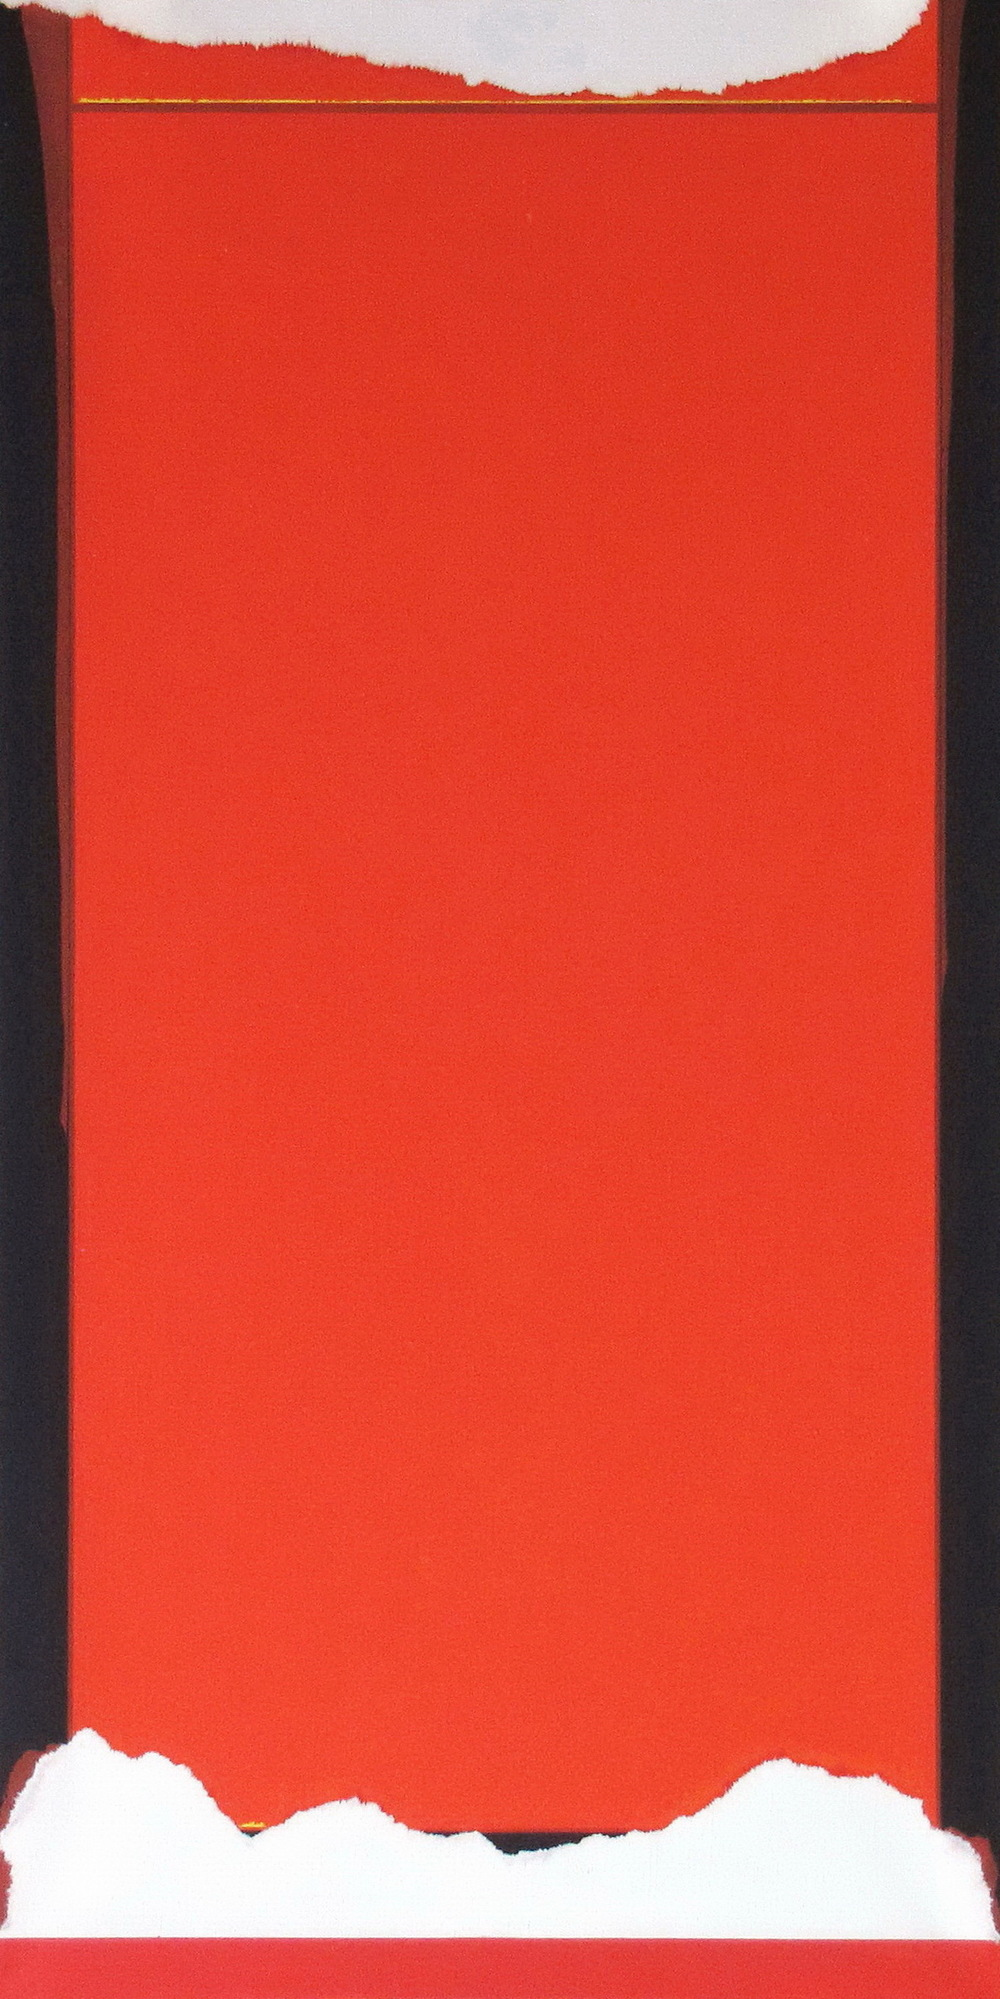 Untitled, 2011, Oil on Canvas, 57 x 29 inch, (145 x 72,4 cm)